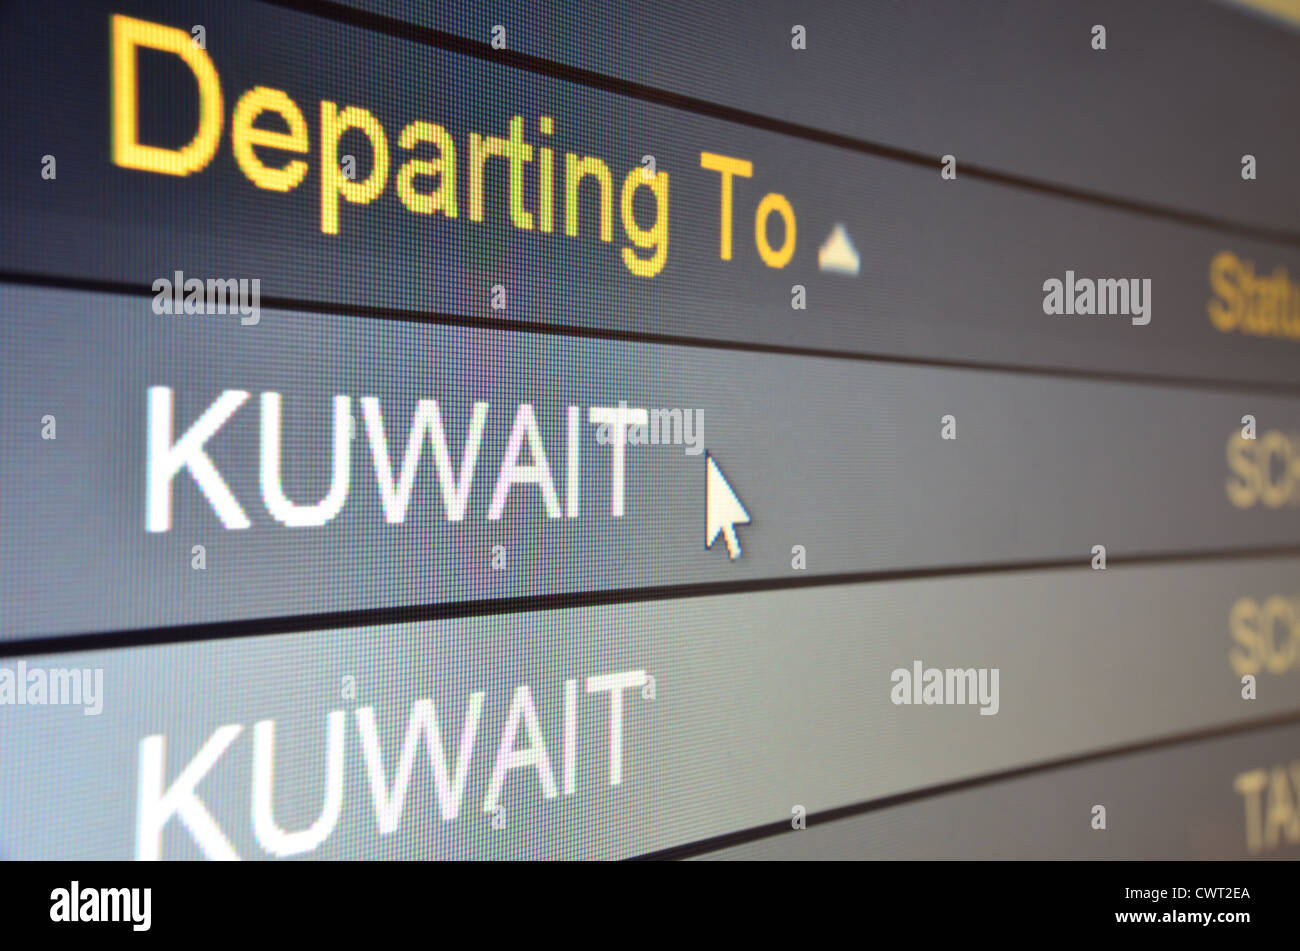 Computer screen closeup of Kuwait flight status - Stock Image